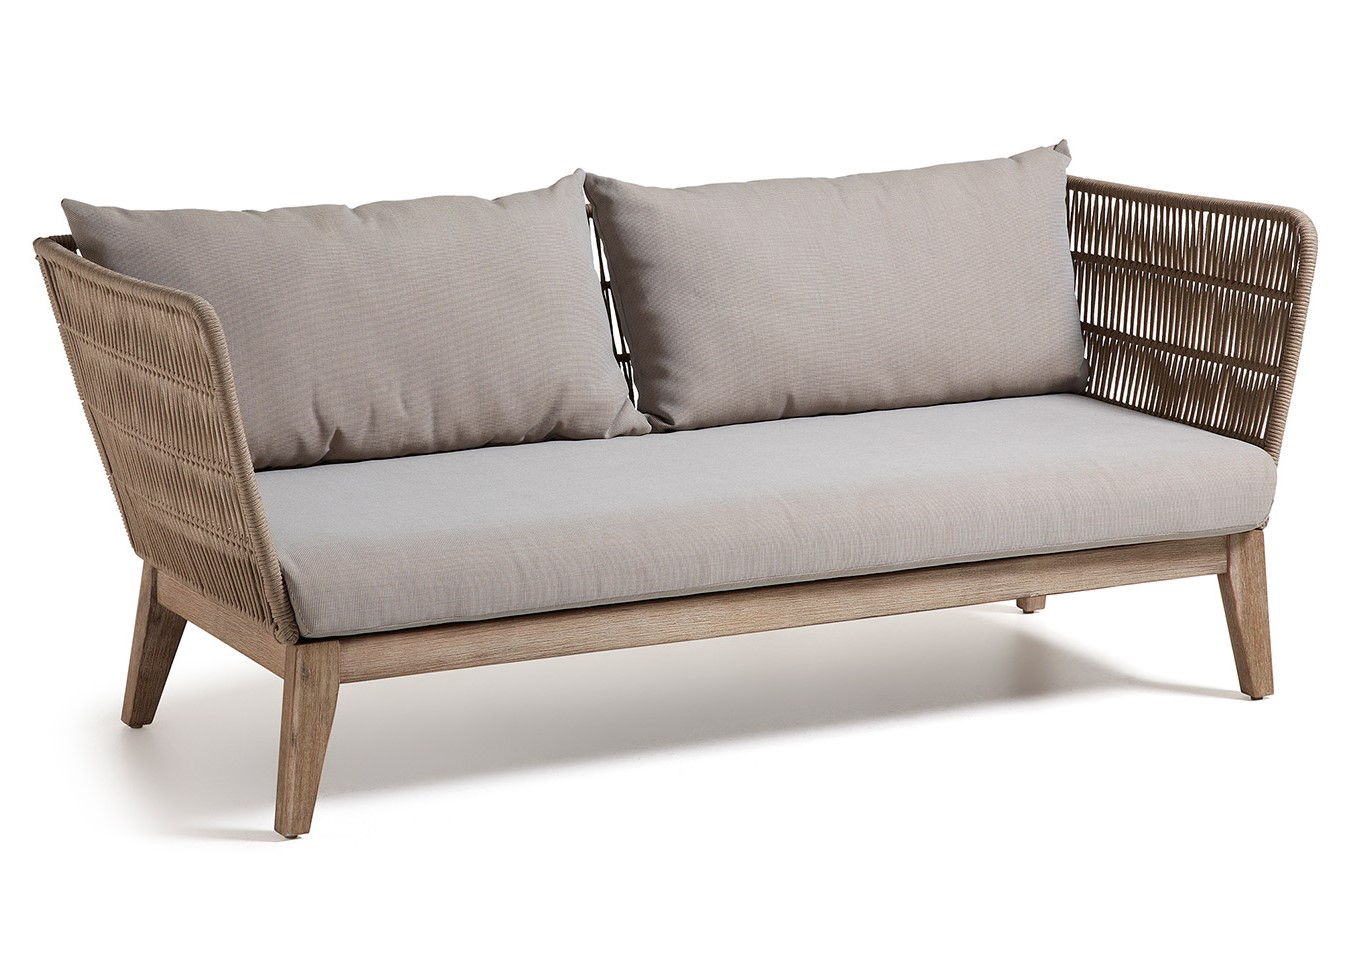 SOFA EXTERIOR BELLANO